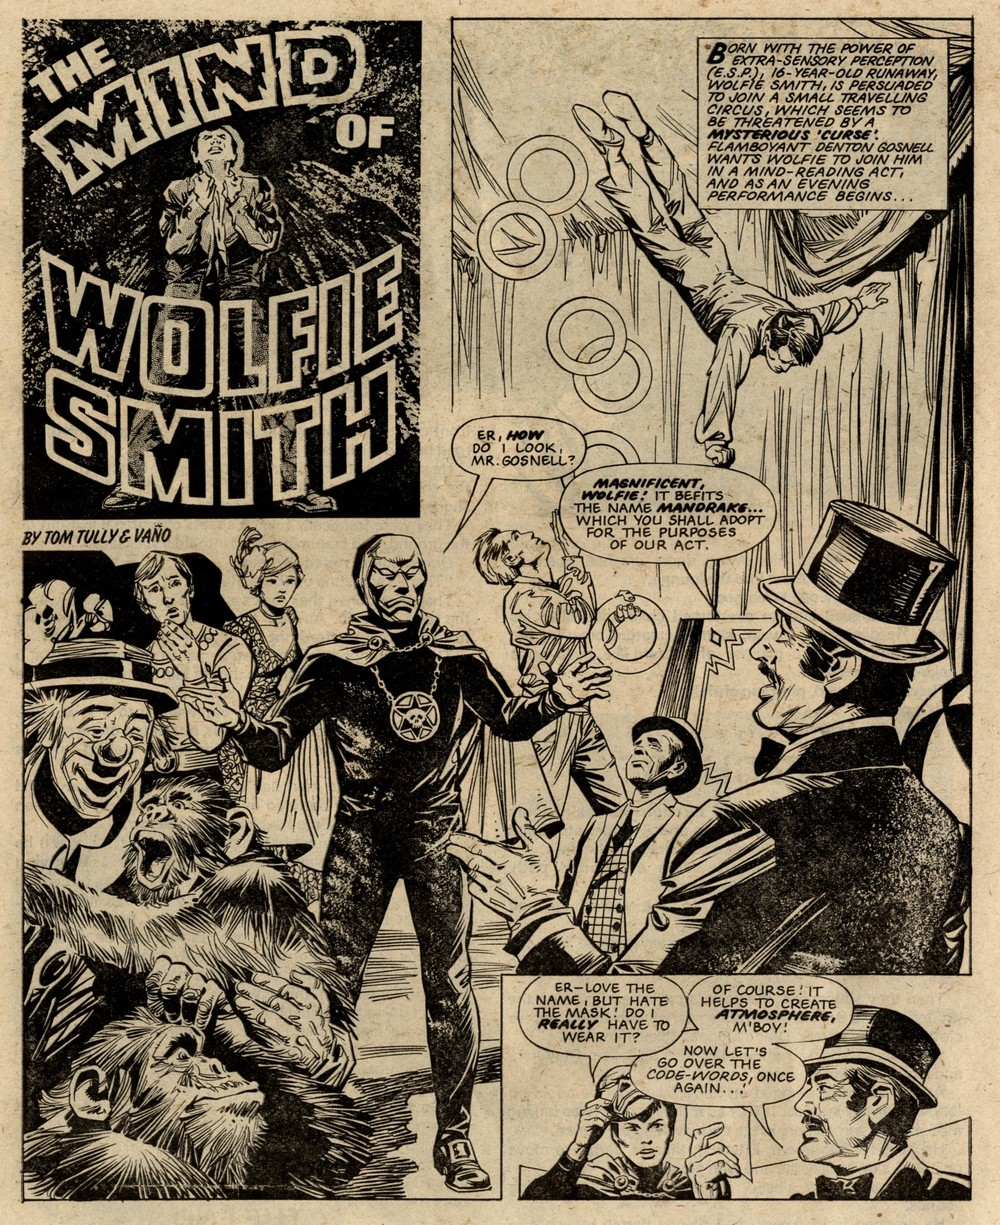 The Mind of Wolfie Smith: Tom Tully (writer), Vicente Va  ñ  o (artist)